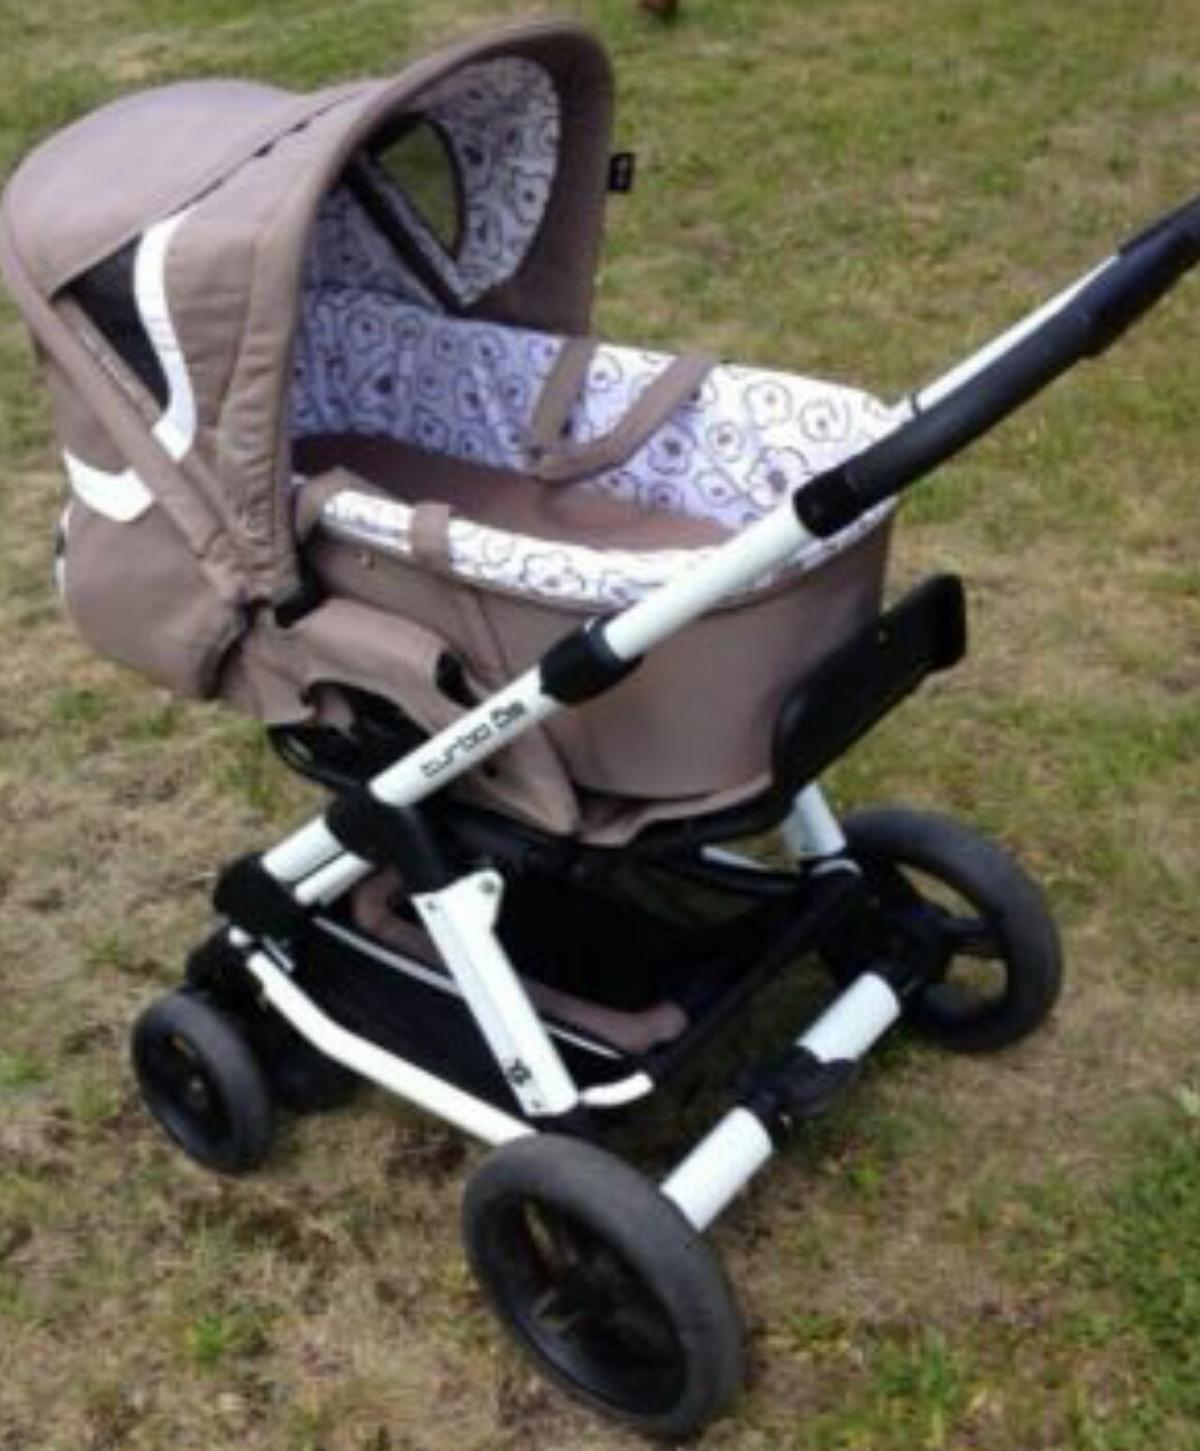 Abc Turbo 6 Zum Buggy Umbauen Abc Design Turbo 4s Kombikinderwagen Buggy